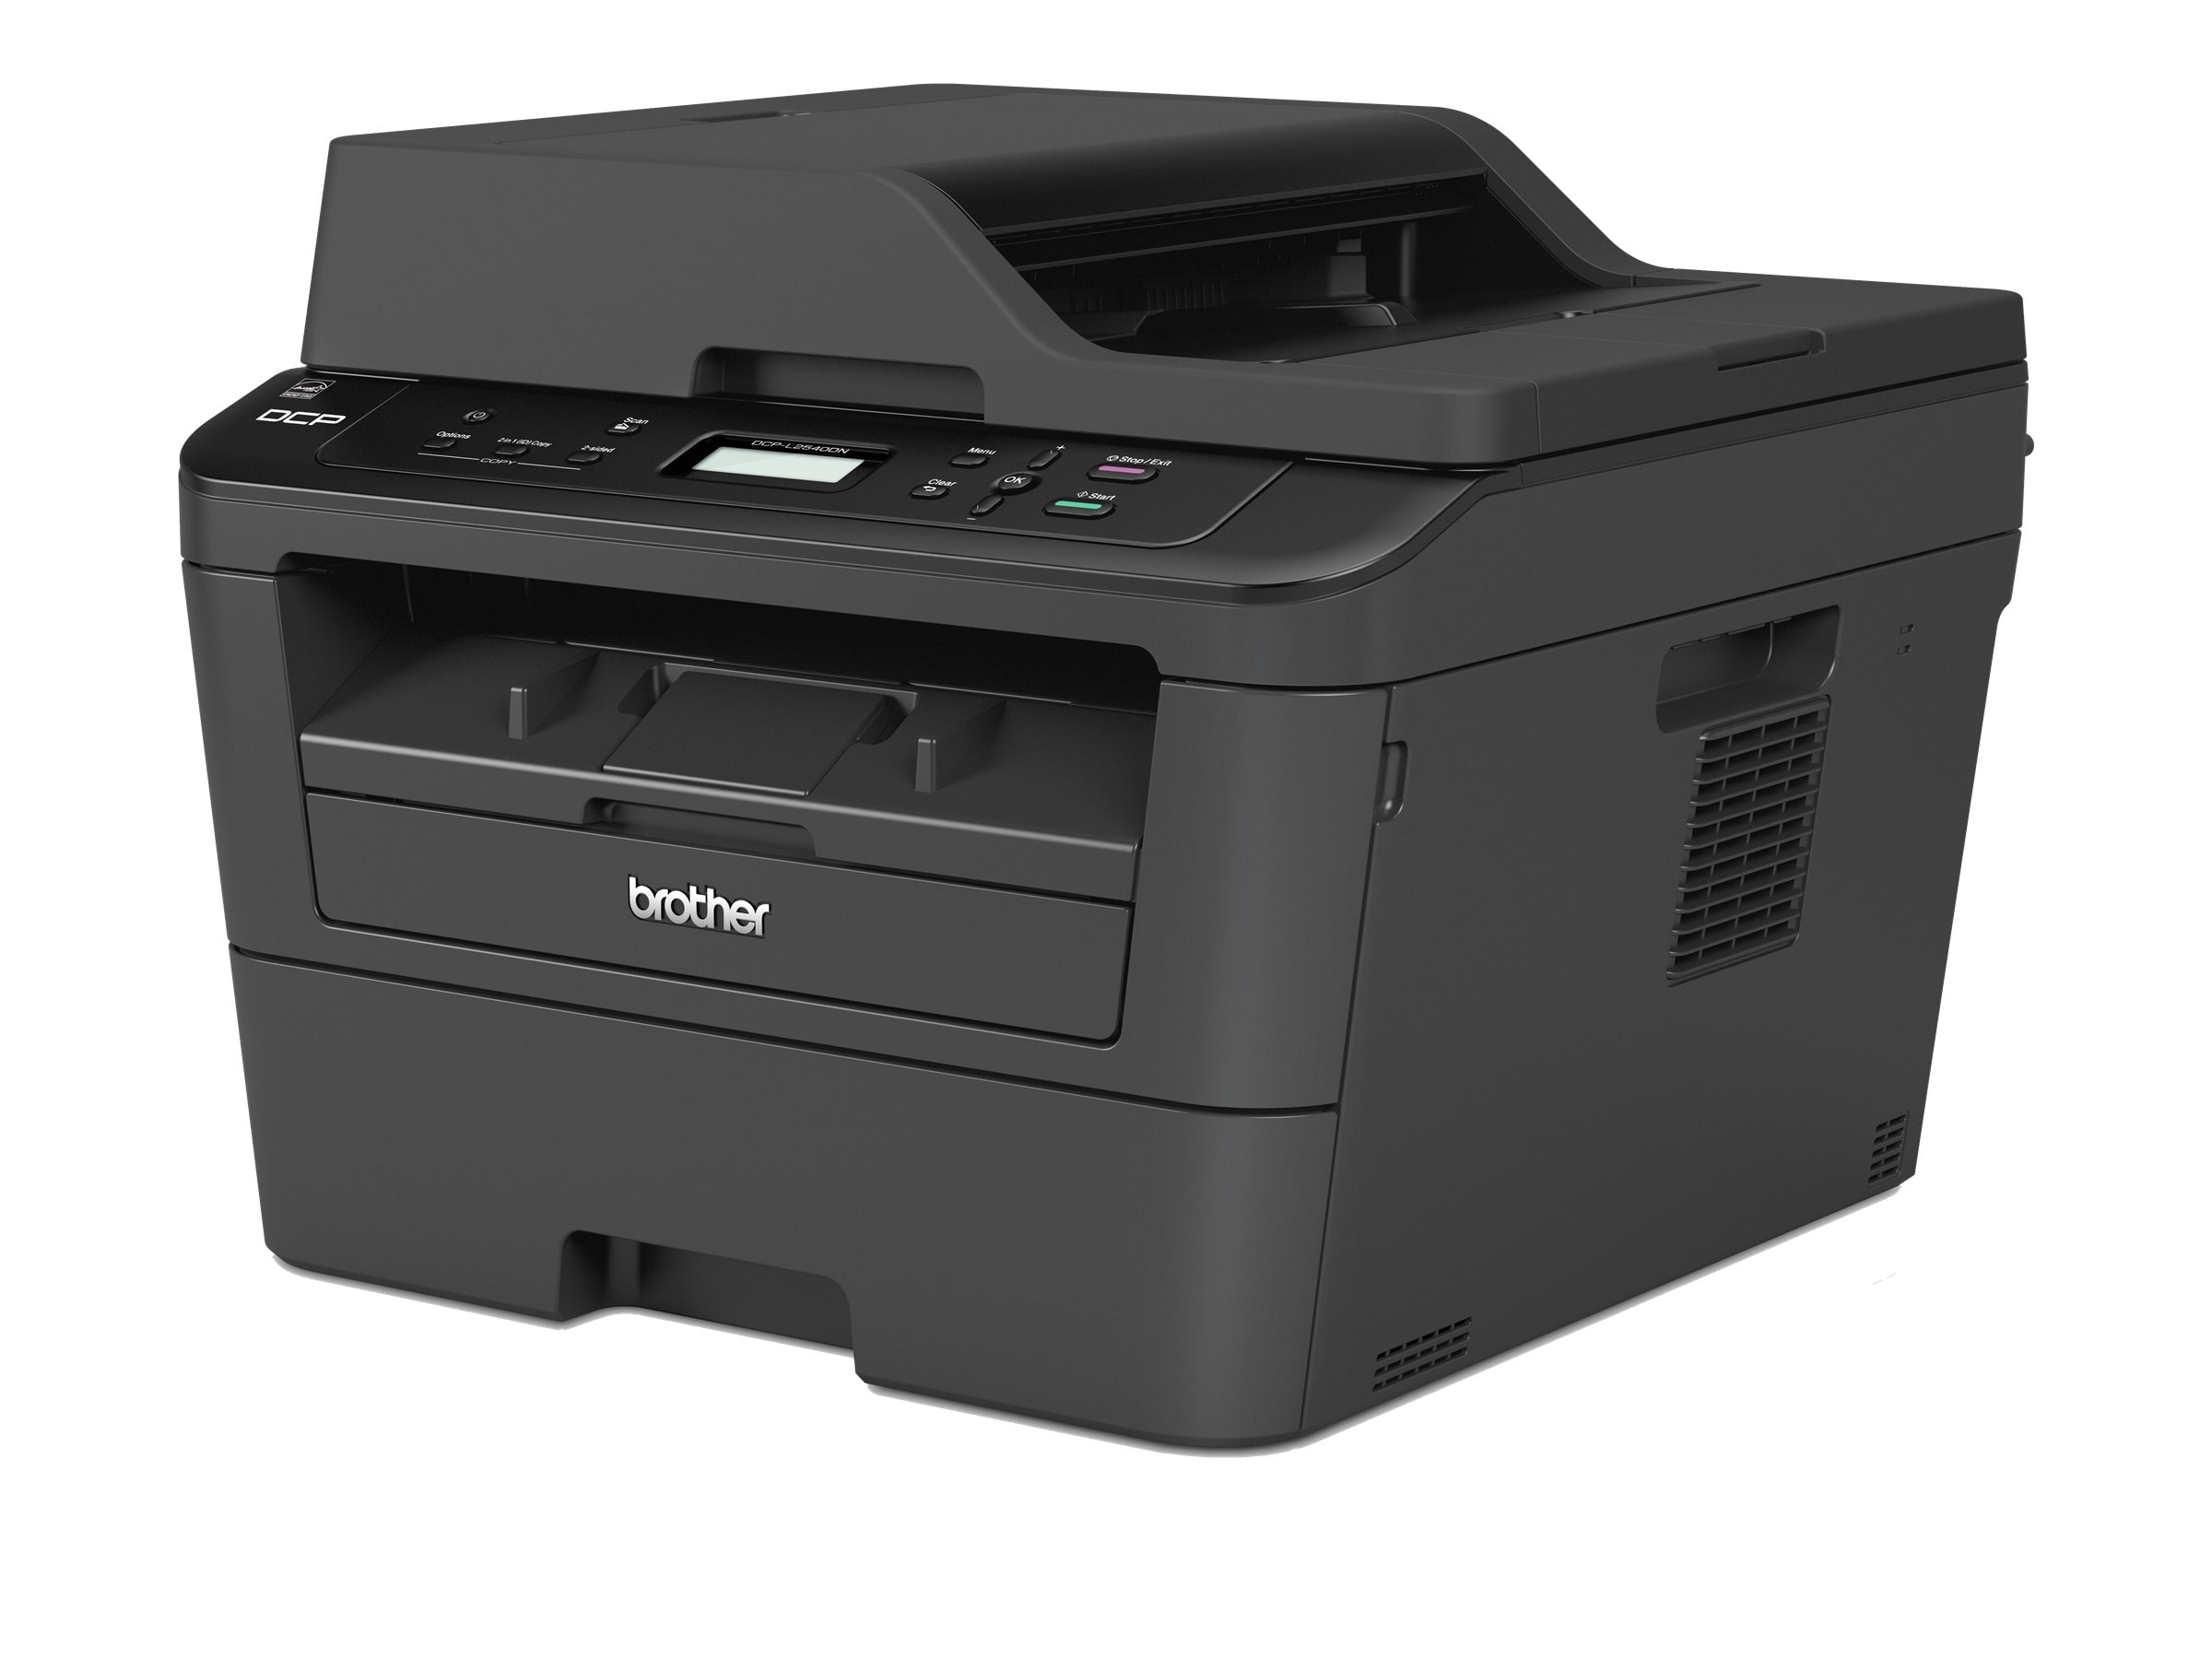 Brother DCP-L2540DW Laser Multi-Function Copier